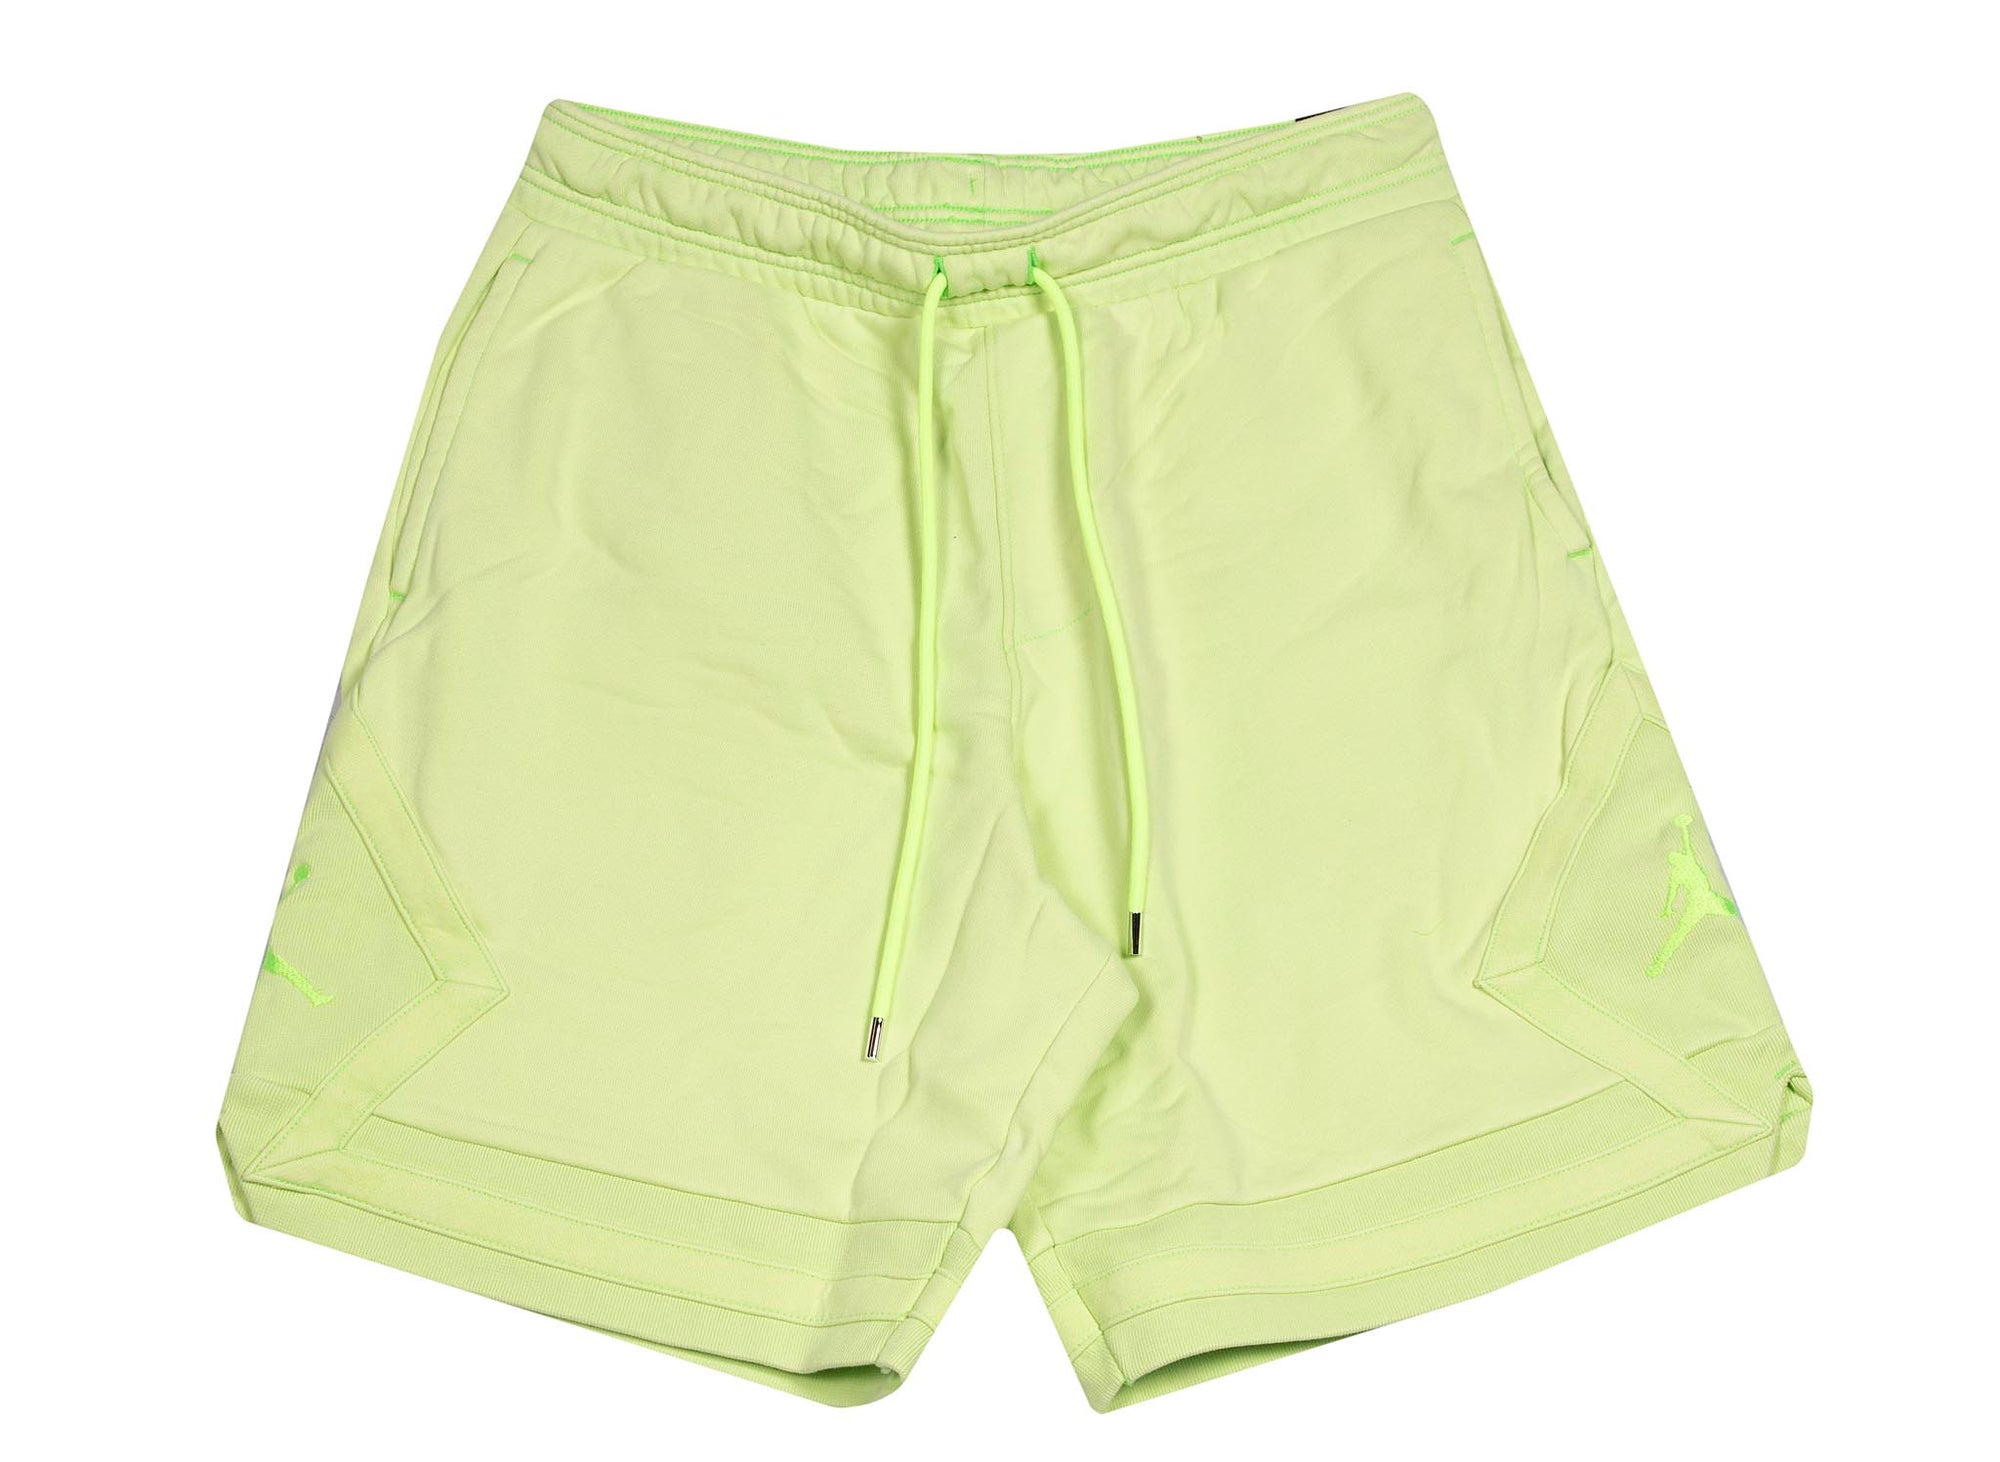 M J WINGS WASH FLC SHORT GHOST GREEN